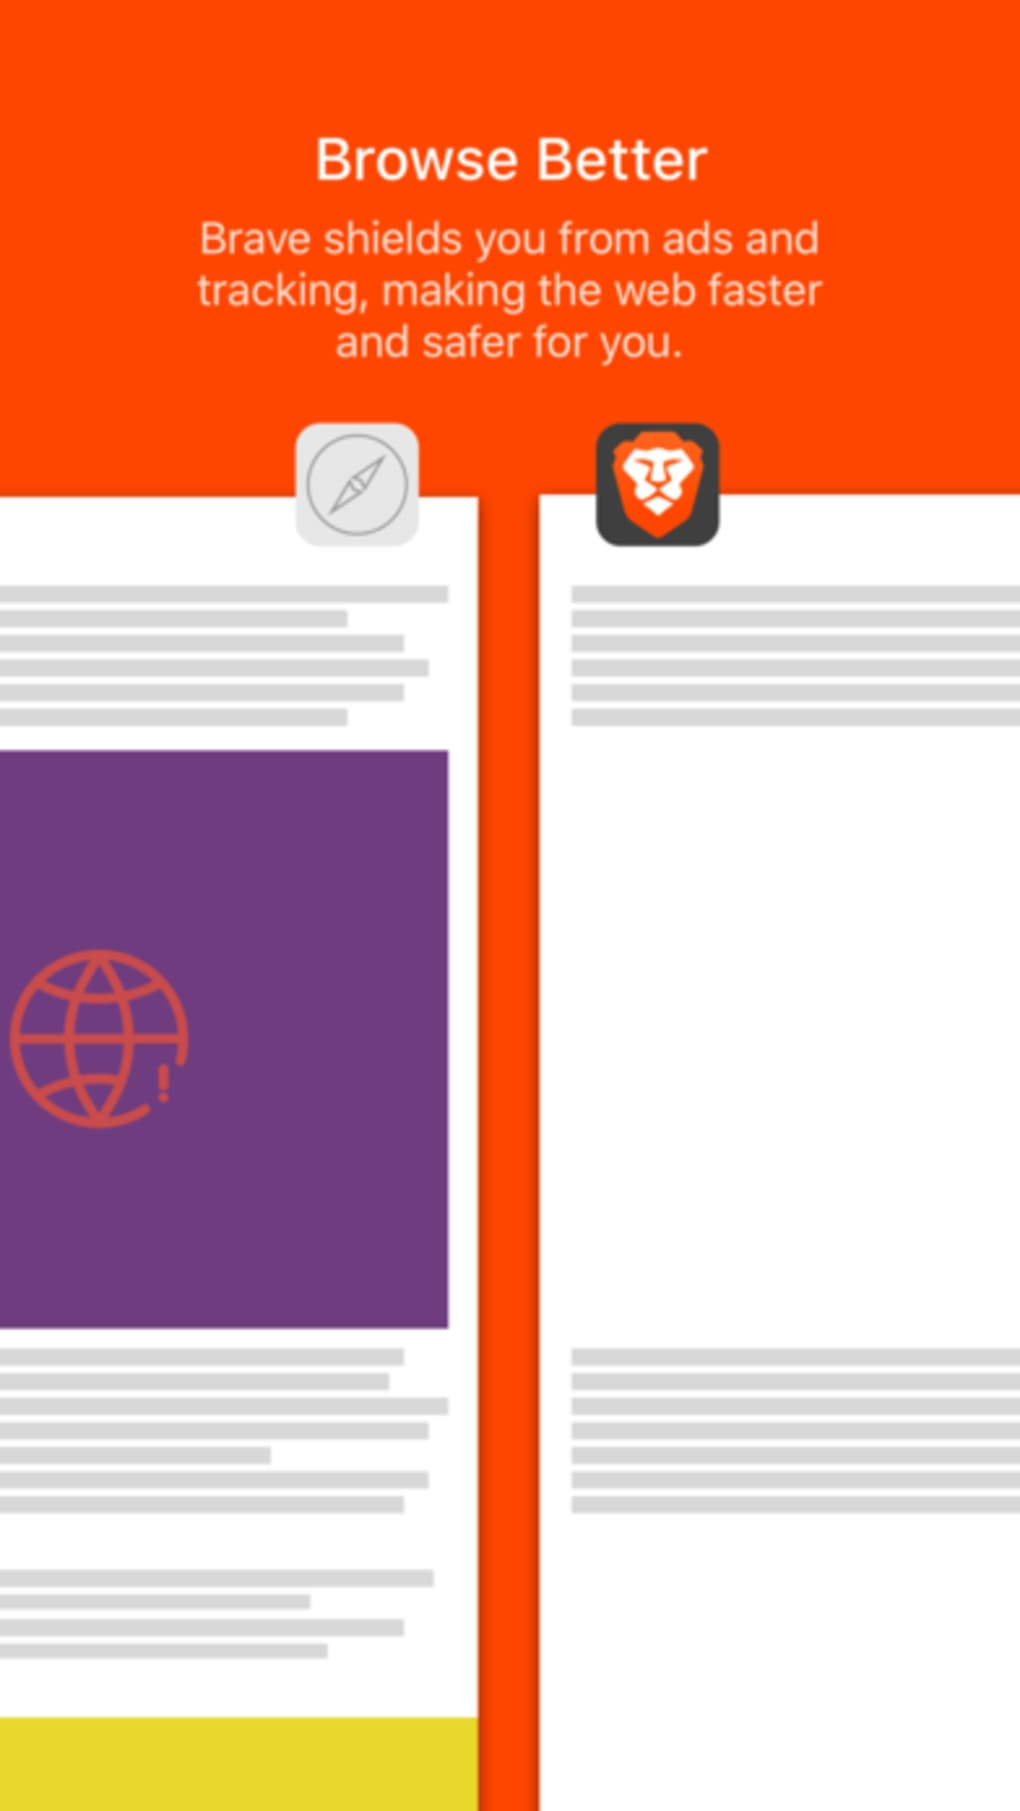 Brave Browser: Fast AdBlocker for iPhone - Download